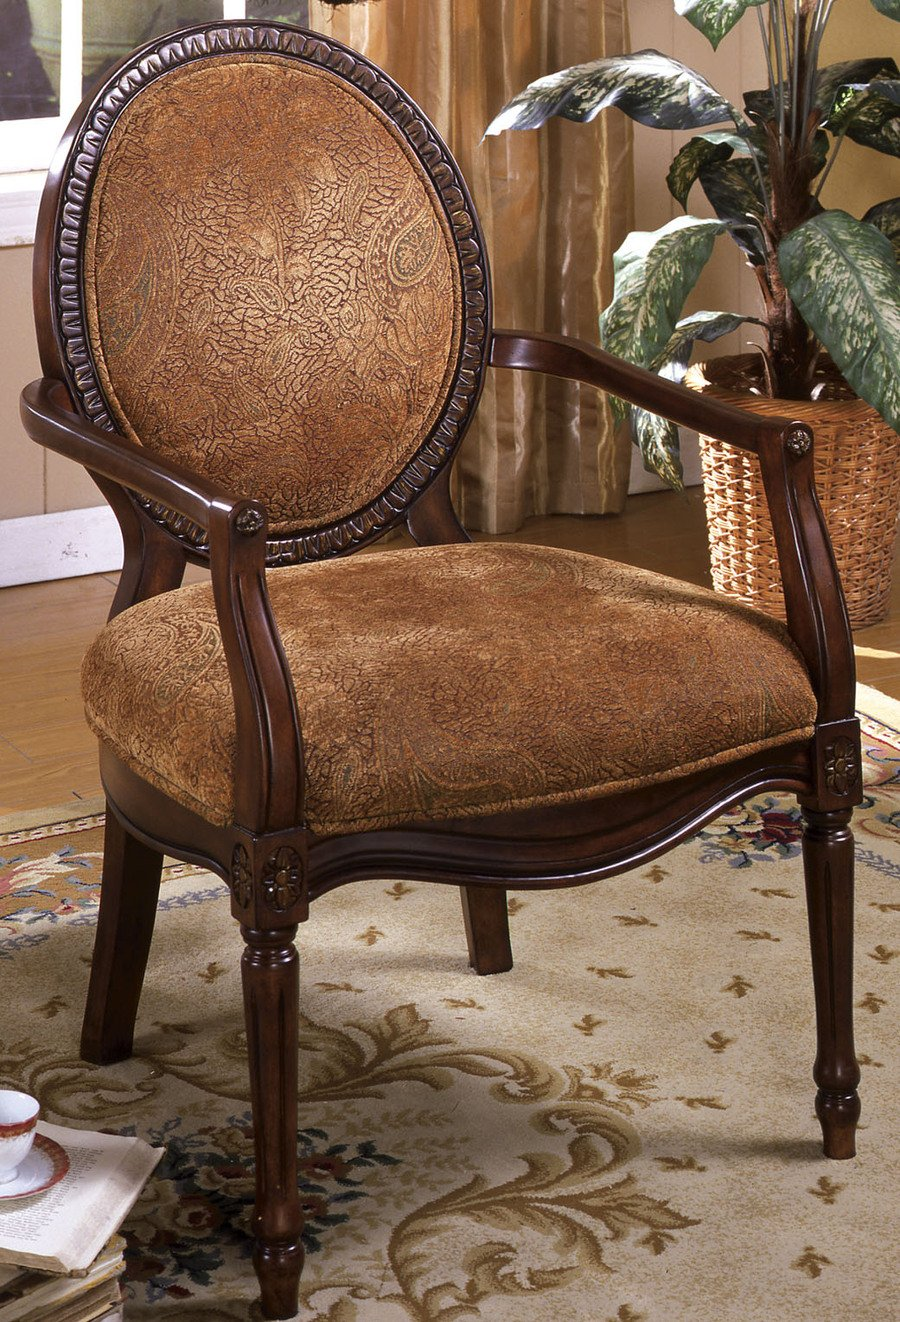 247SHOPATHOME IDF-AC6116 Armchairs, Brown